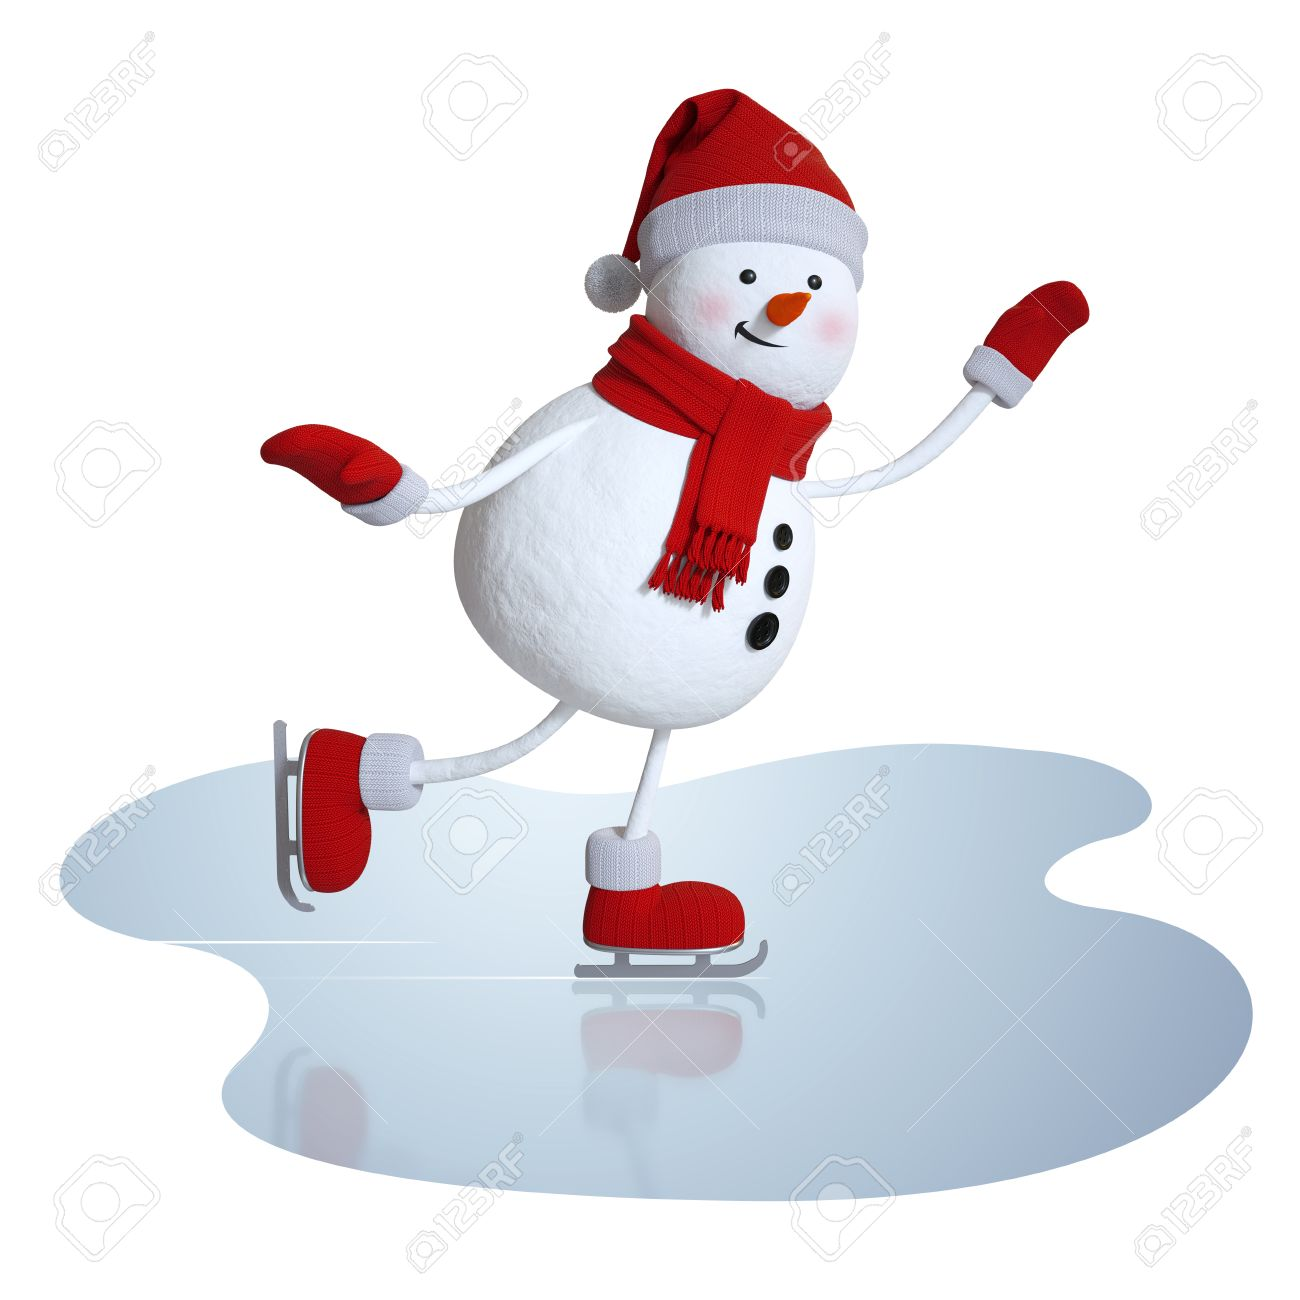 3d Snowman Figure Skating, Winter Sports Clipart Stock Photo ...